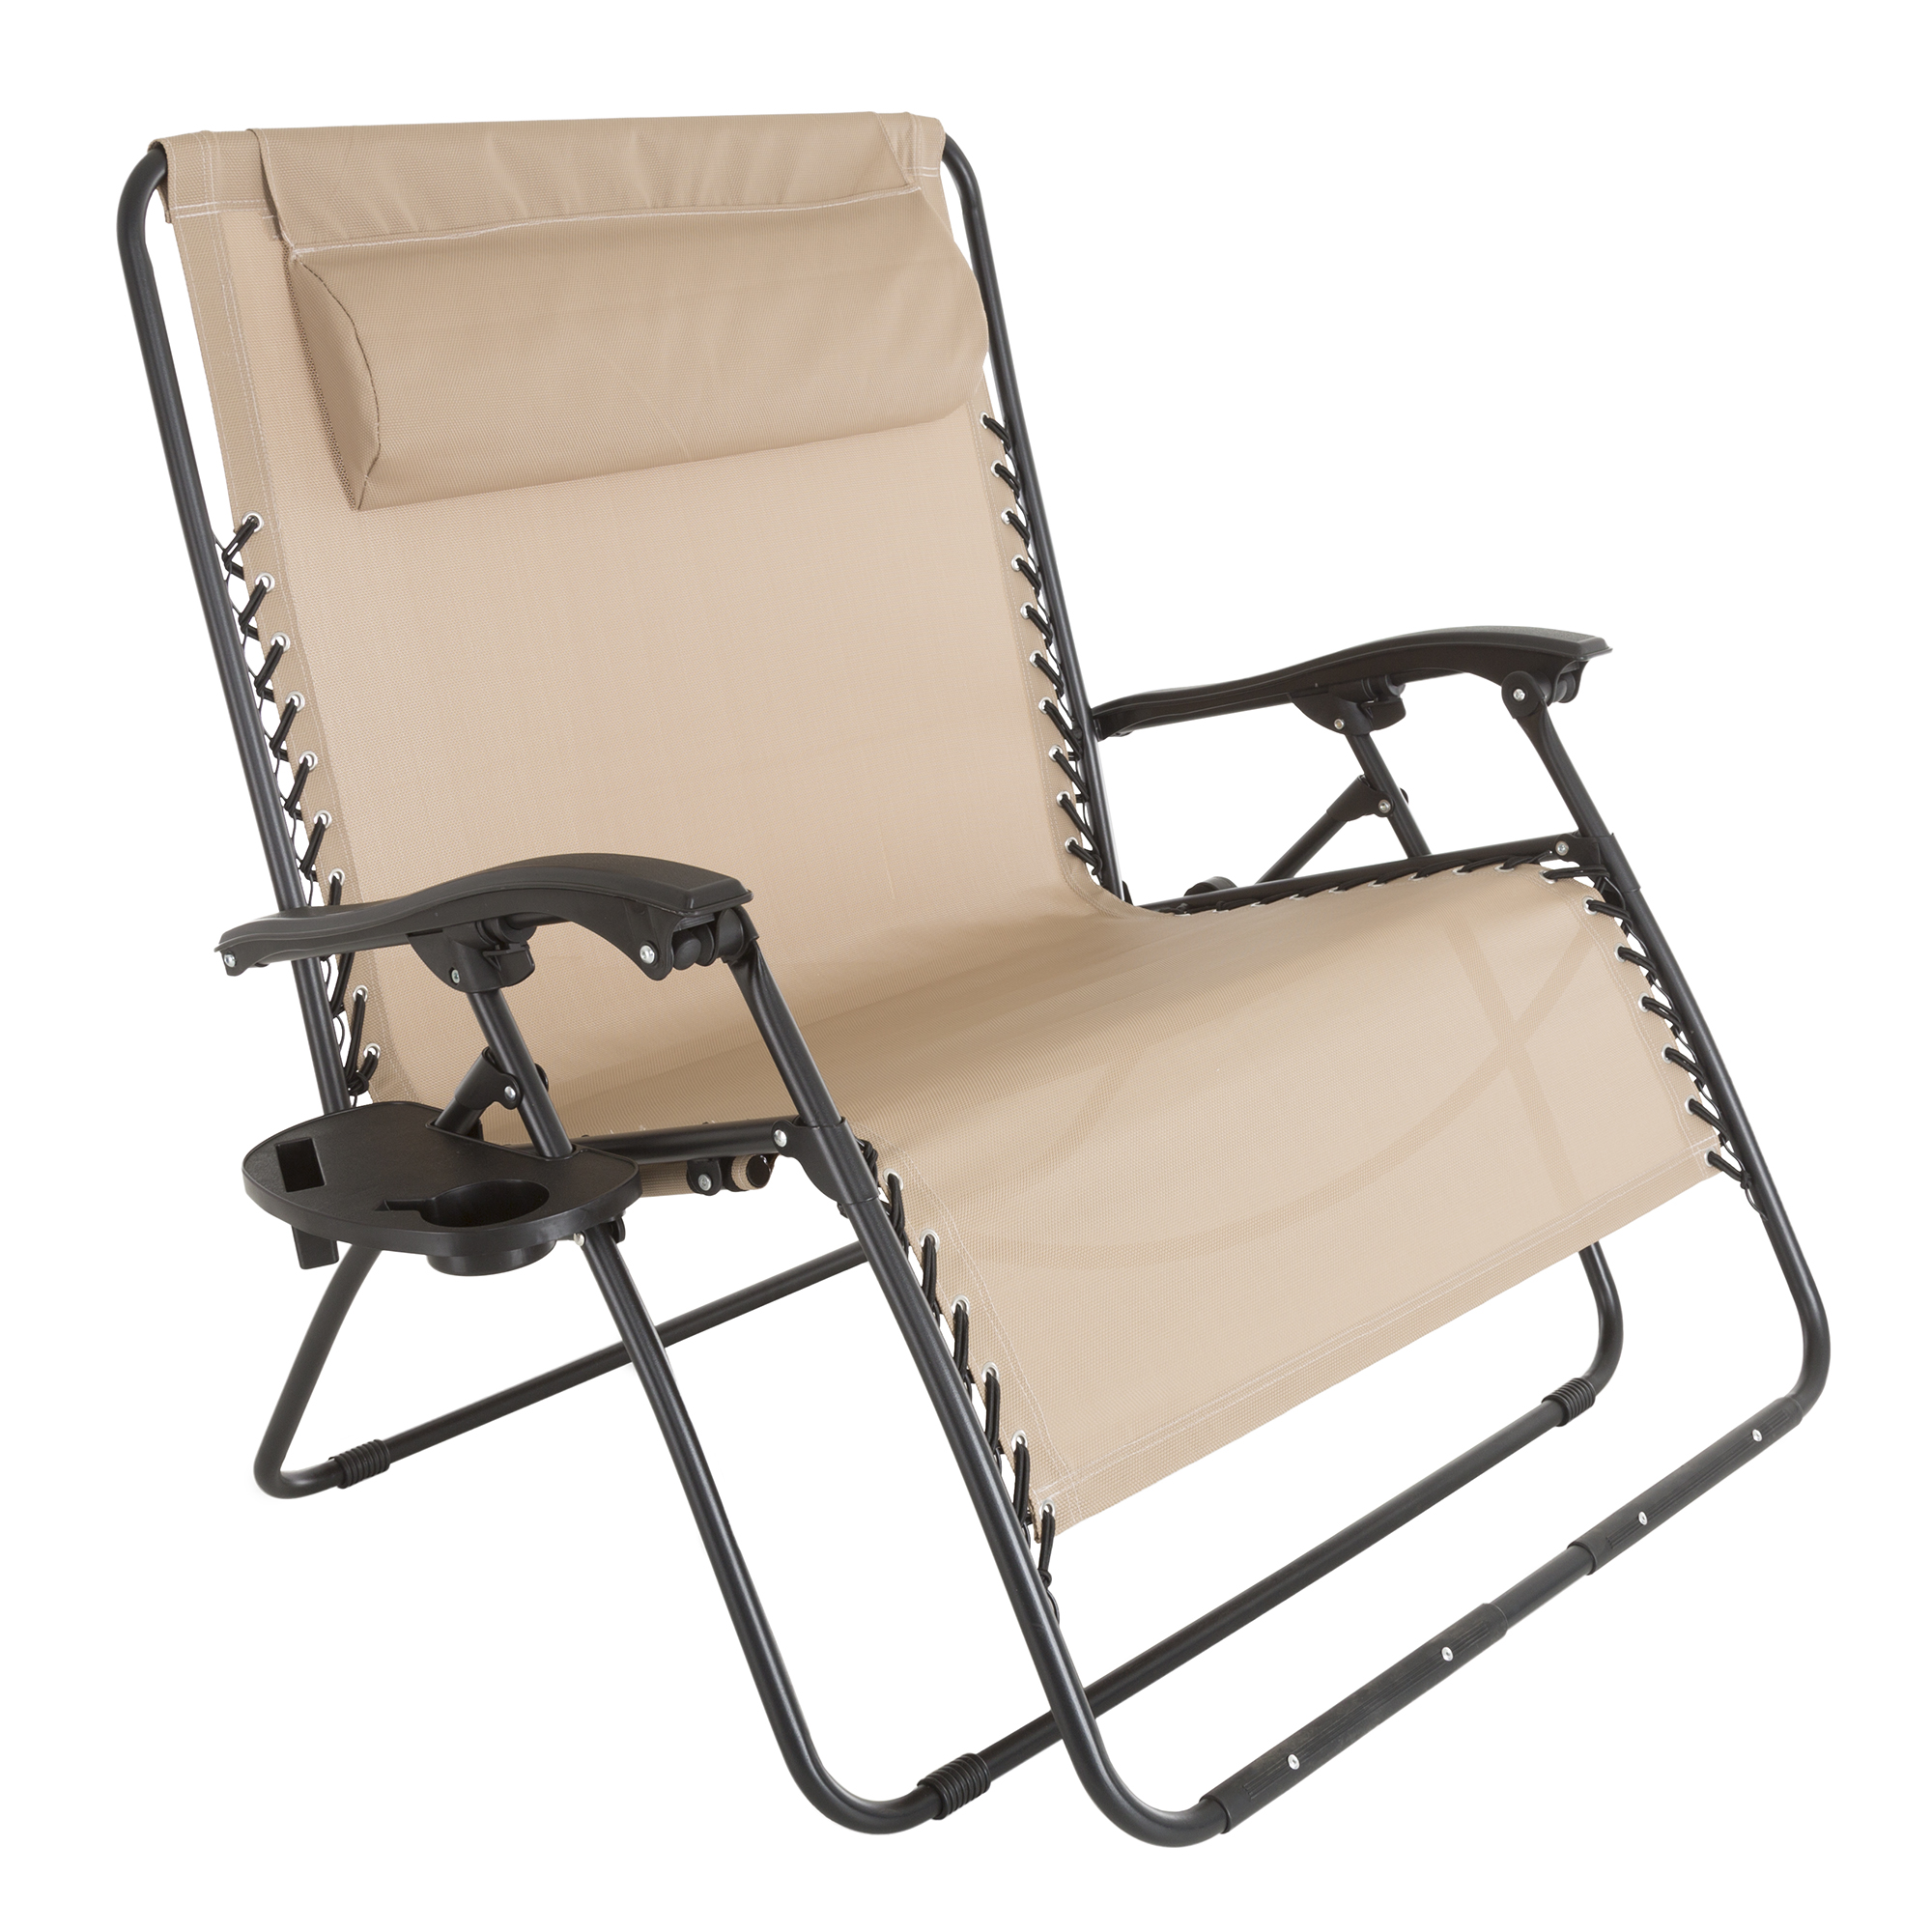 oversized tag sports recliner template home of outdoor chair zero chaise caravan lounge patio fresh gravity loveseat best